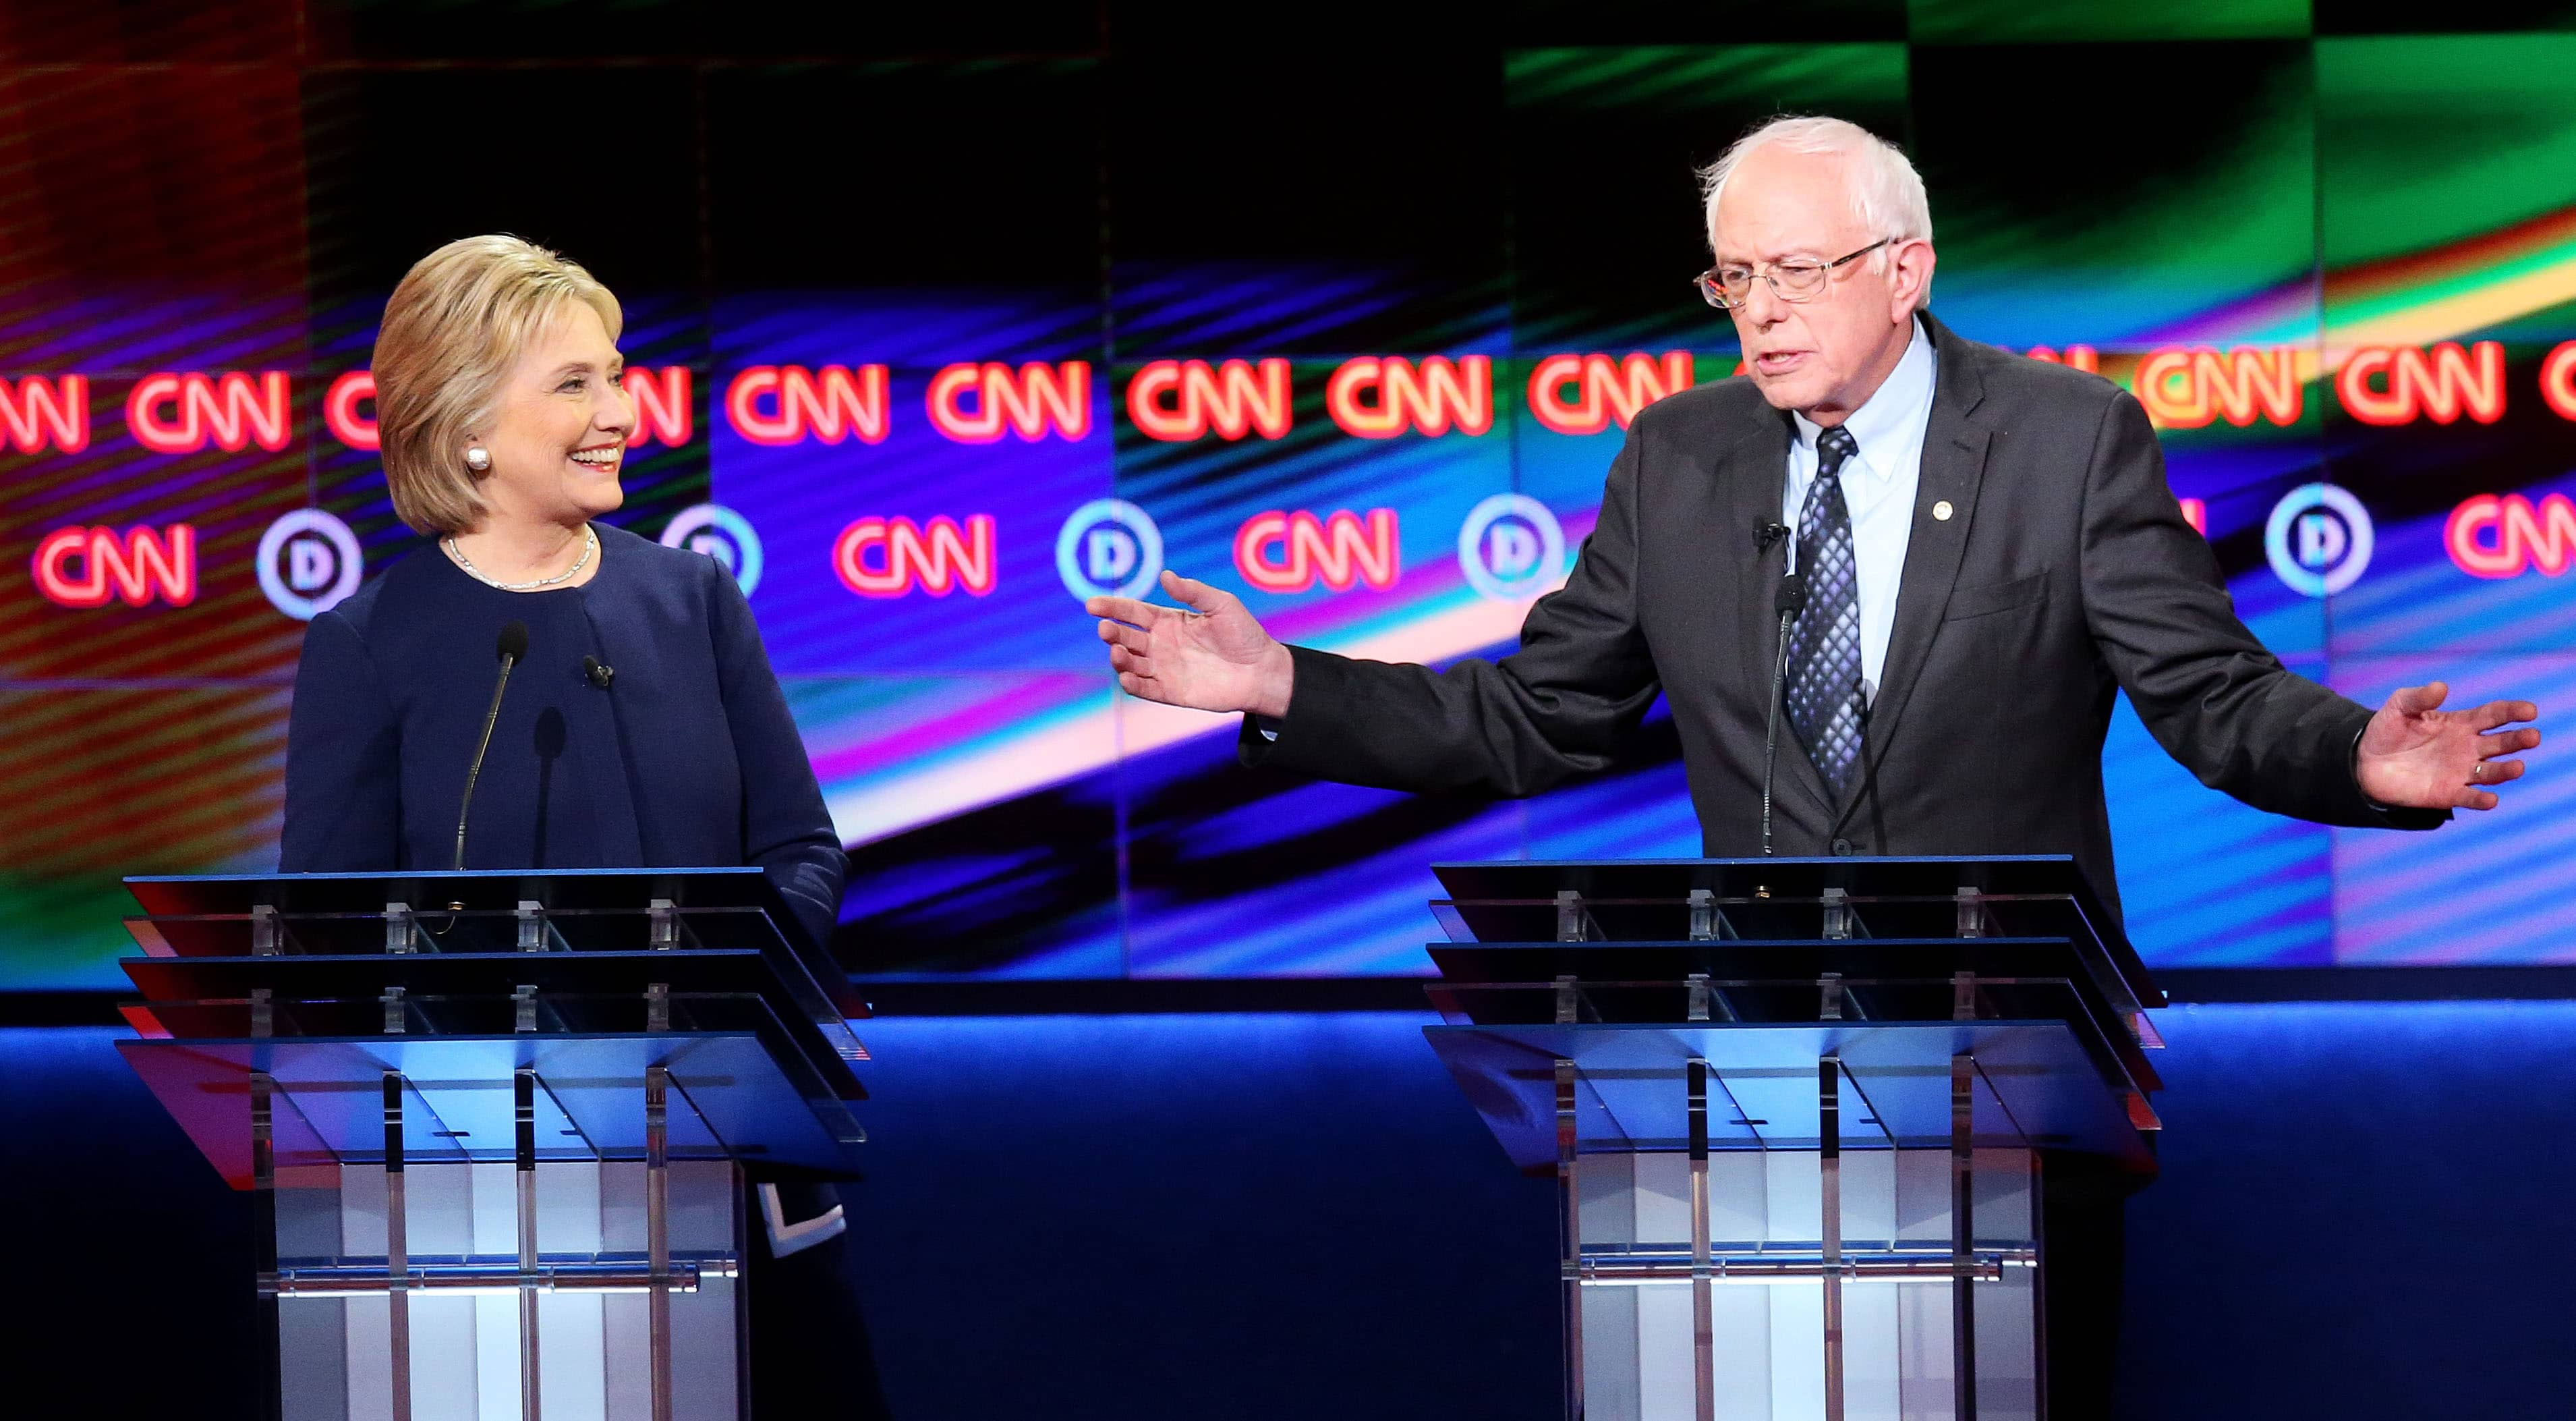 Democratic primaries: Hillary Clinton vs. Bernie Sanders in Flint debate